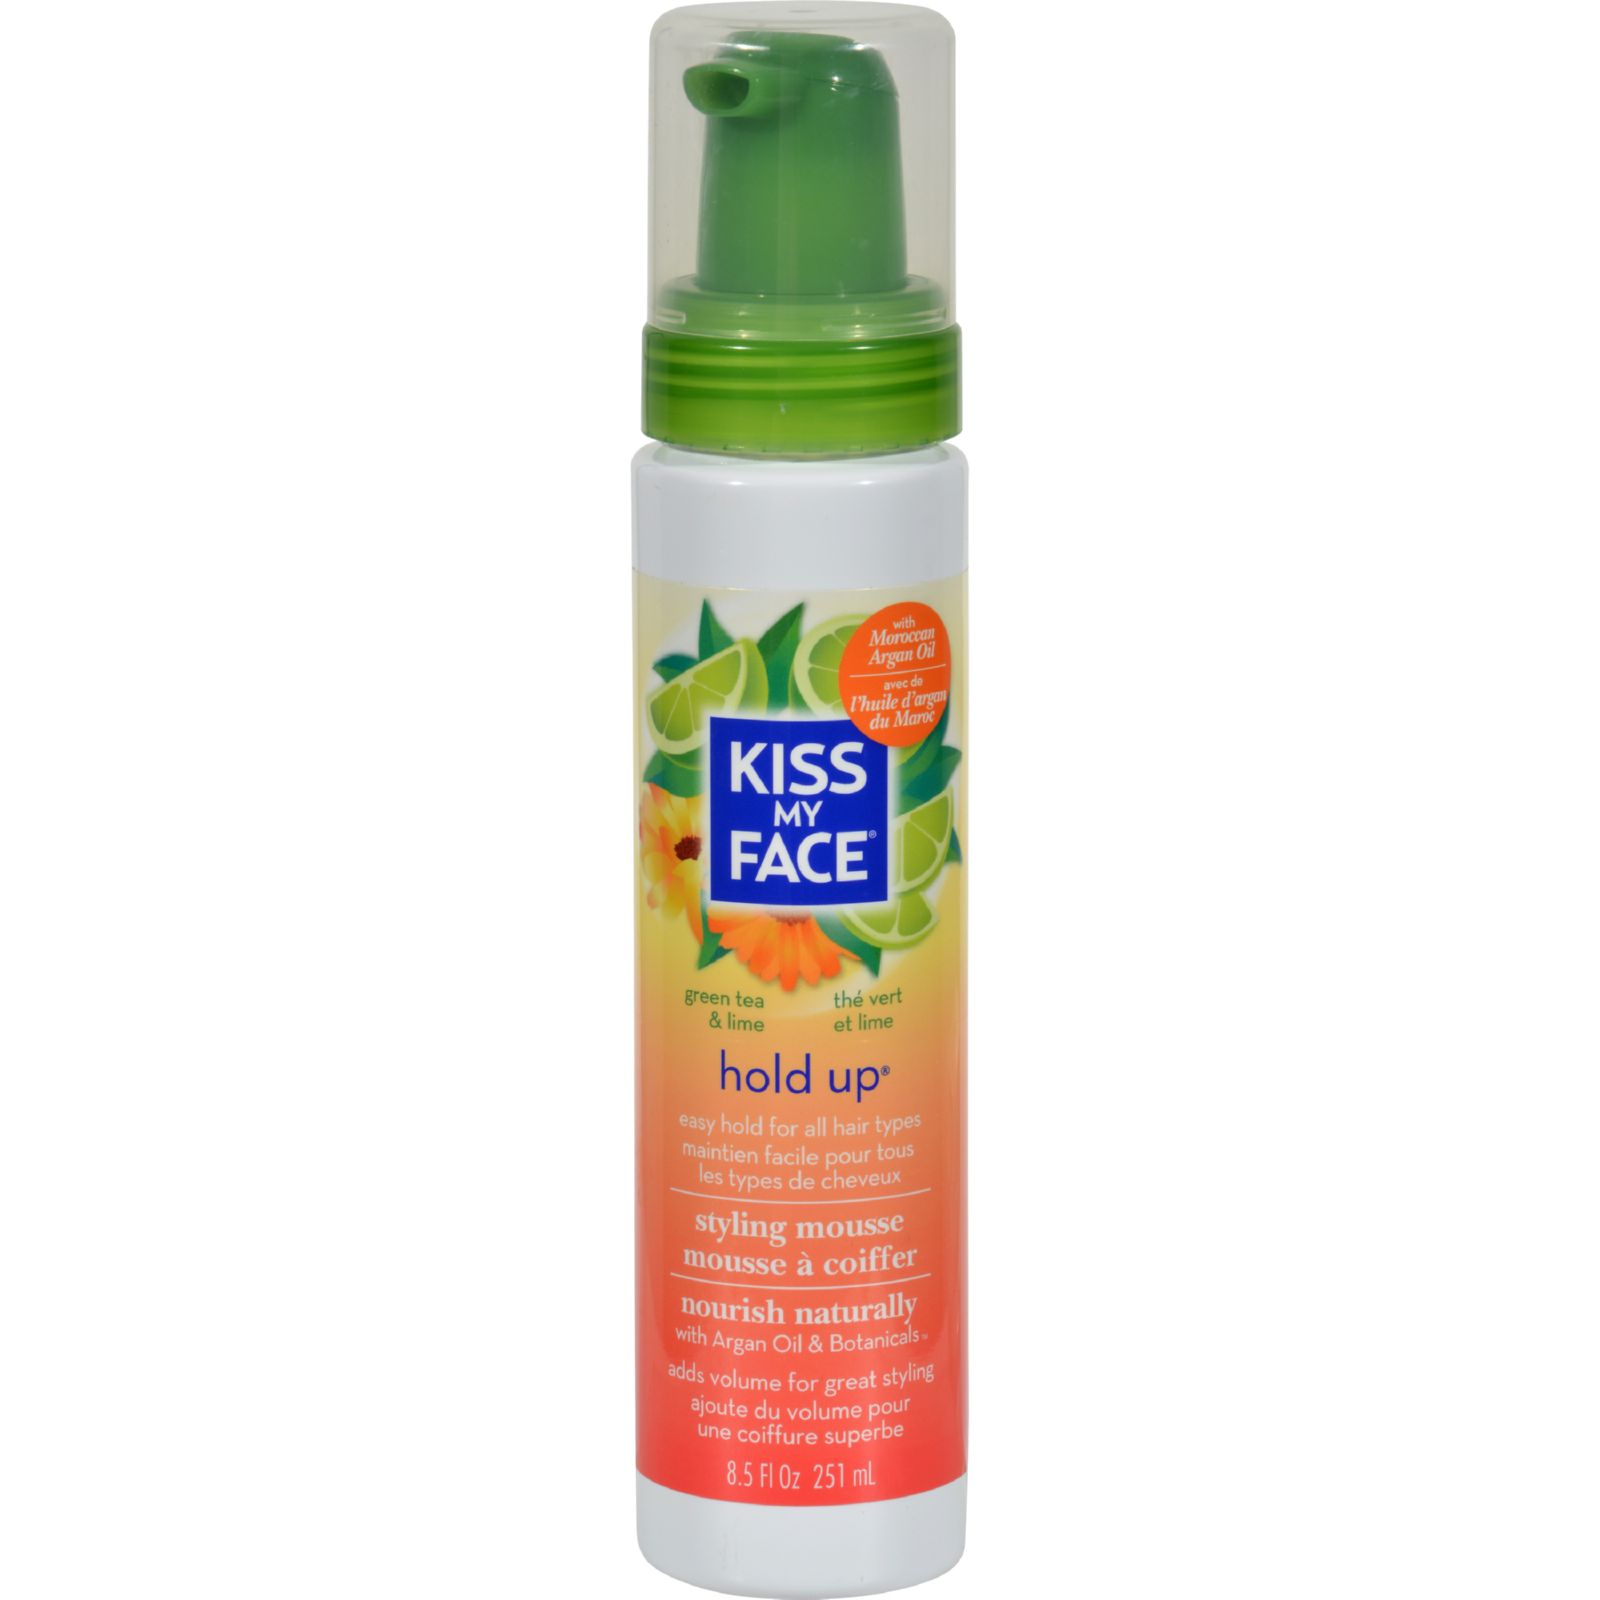 Kiss My Face Hold Up Easy Styling Mousse - 8.5 fl oz